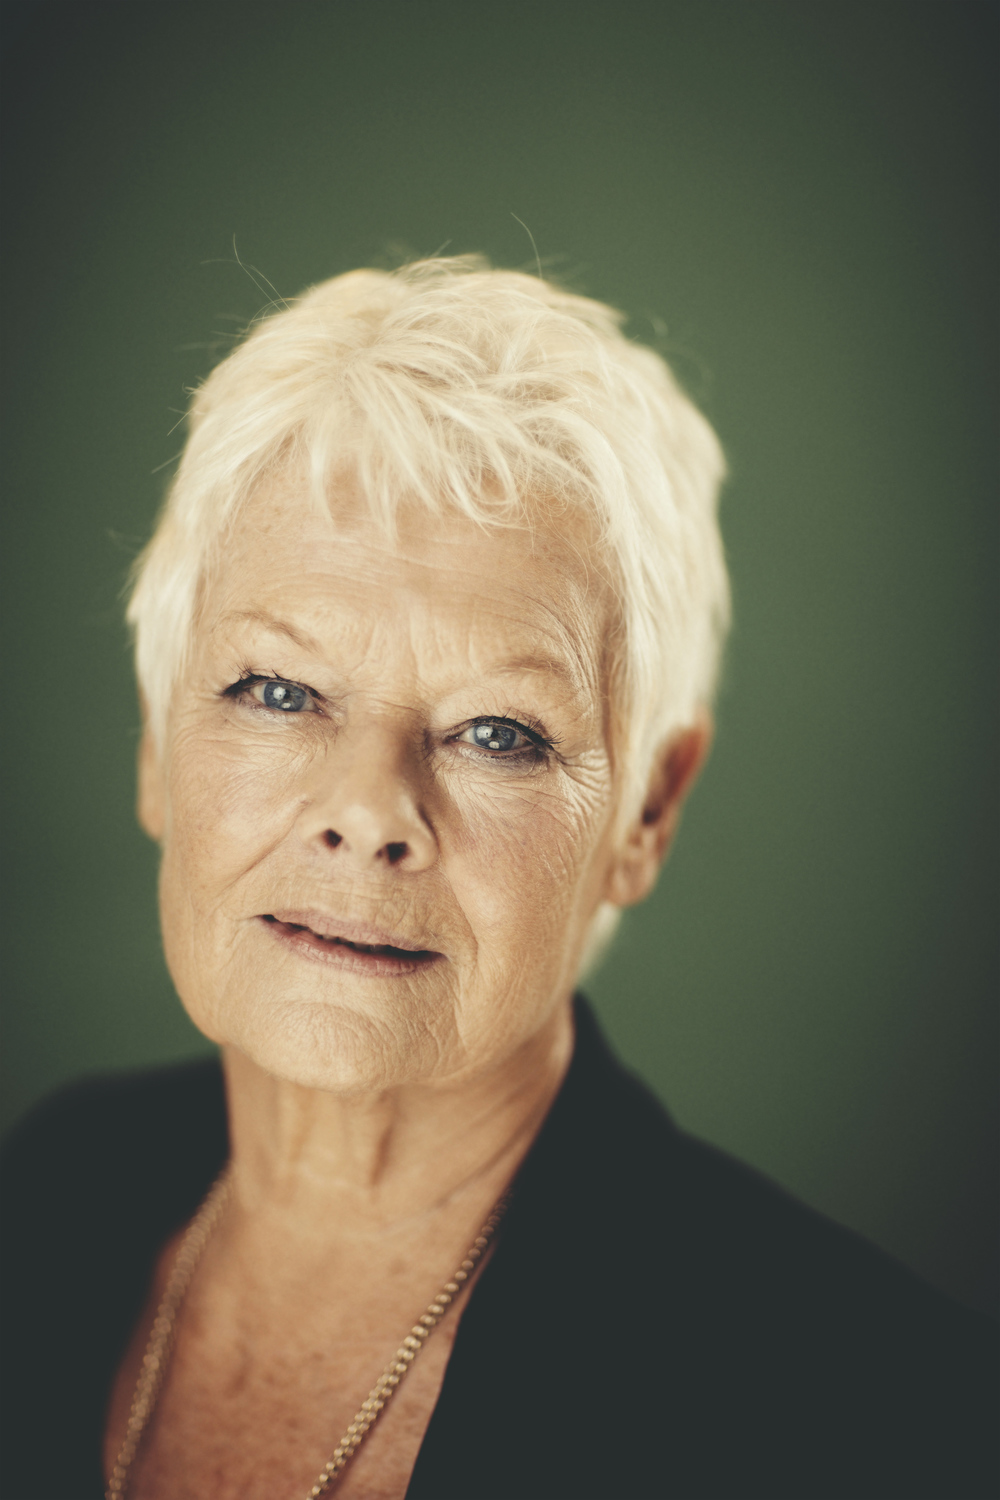 LONDON, GBR - OCTOBER 22, 2013